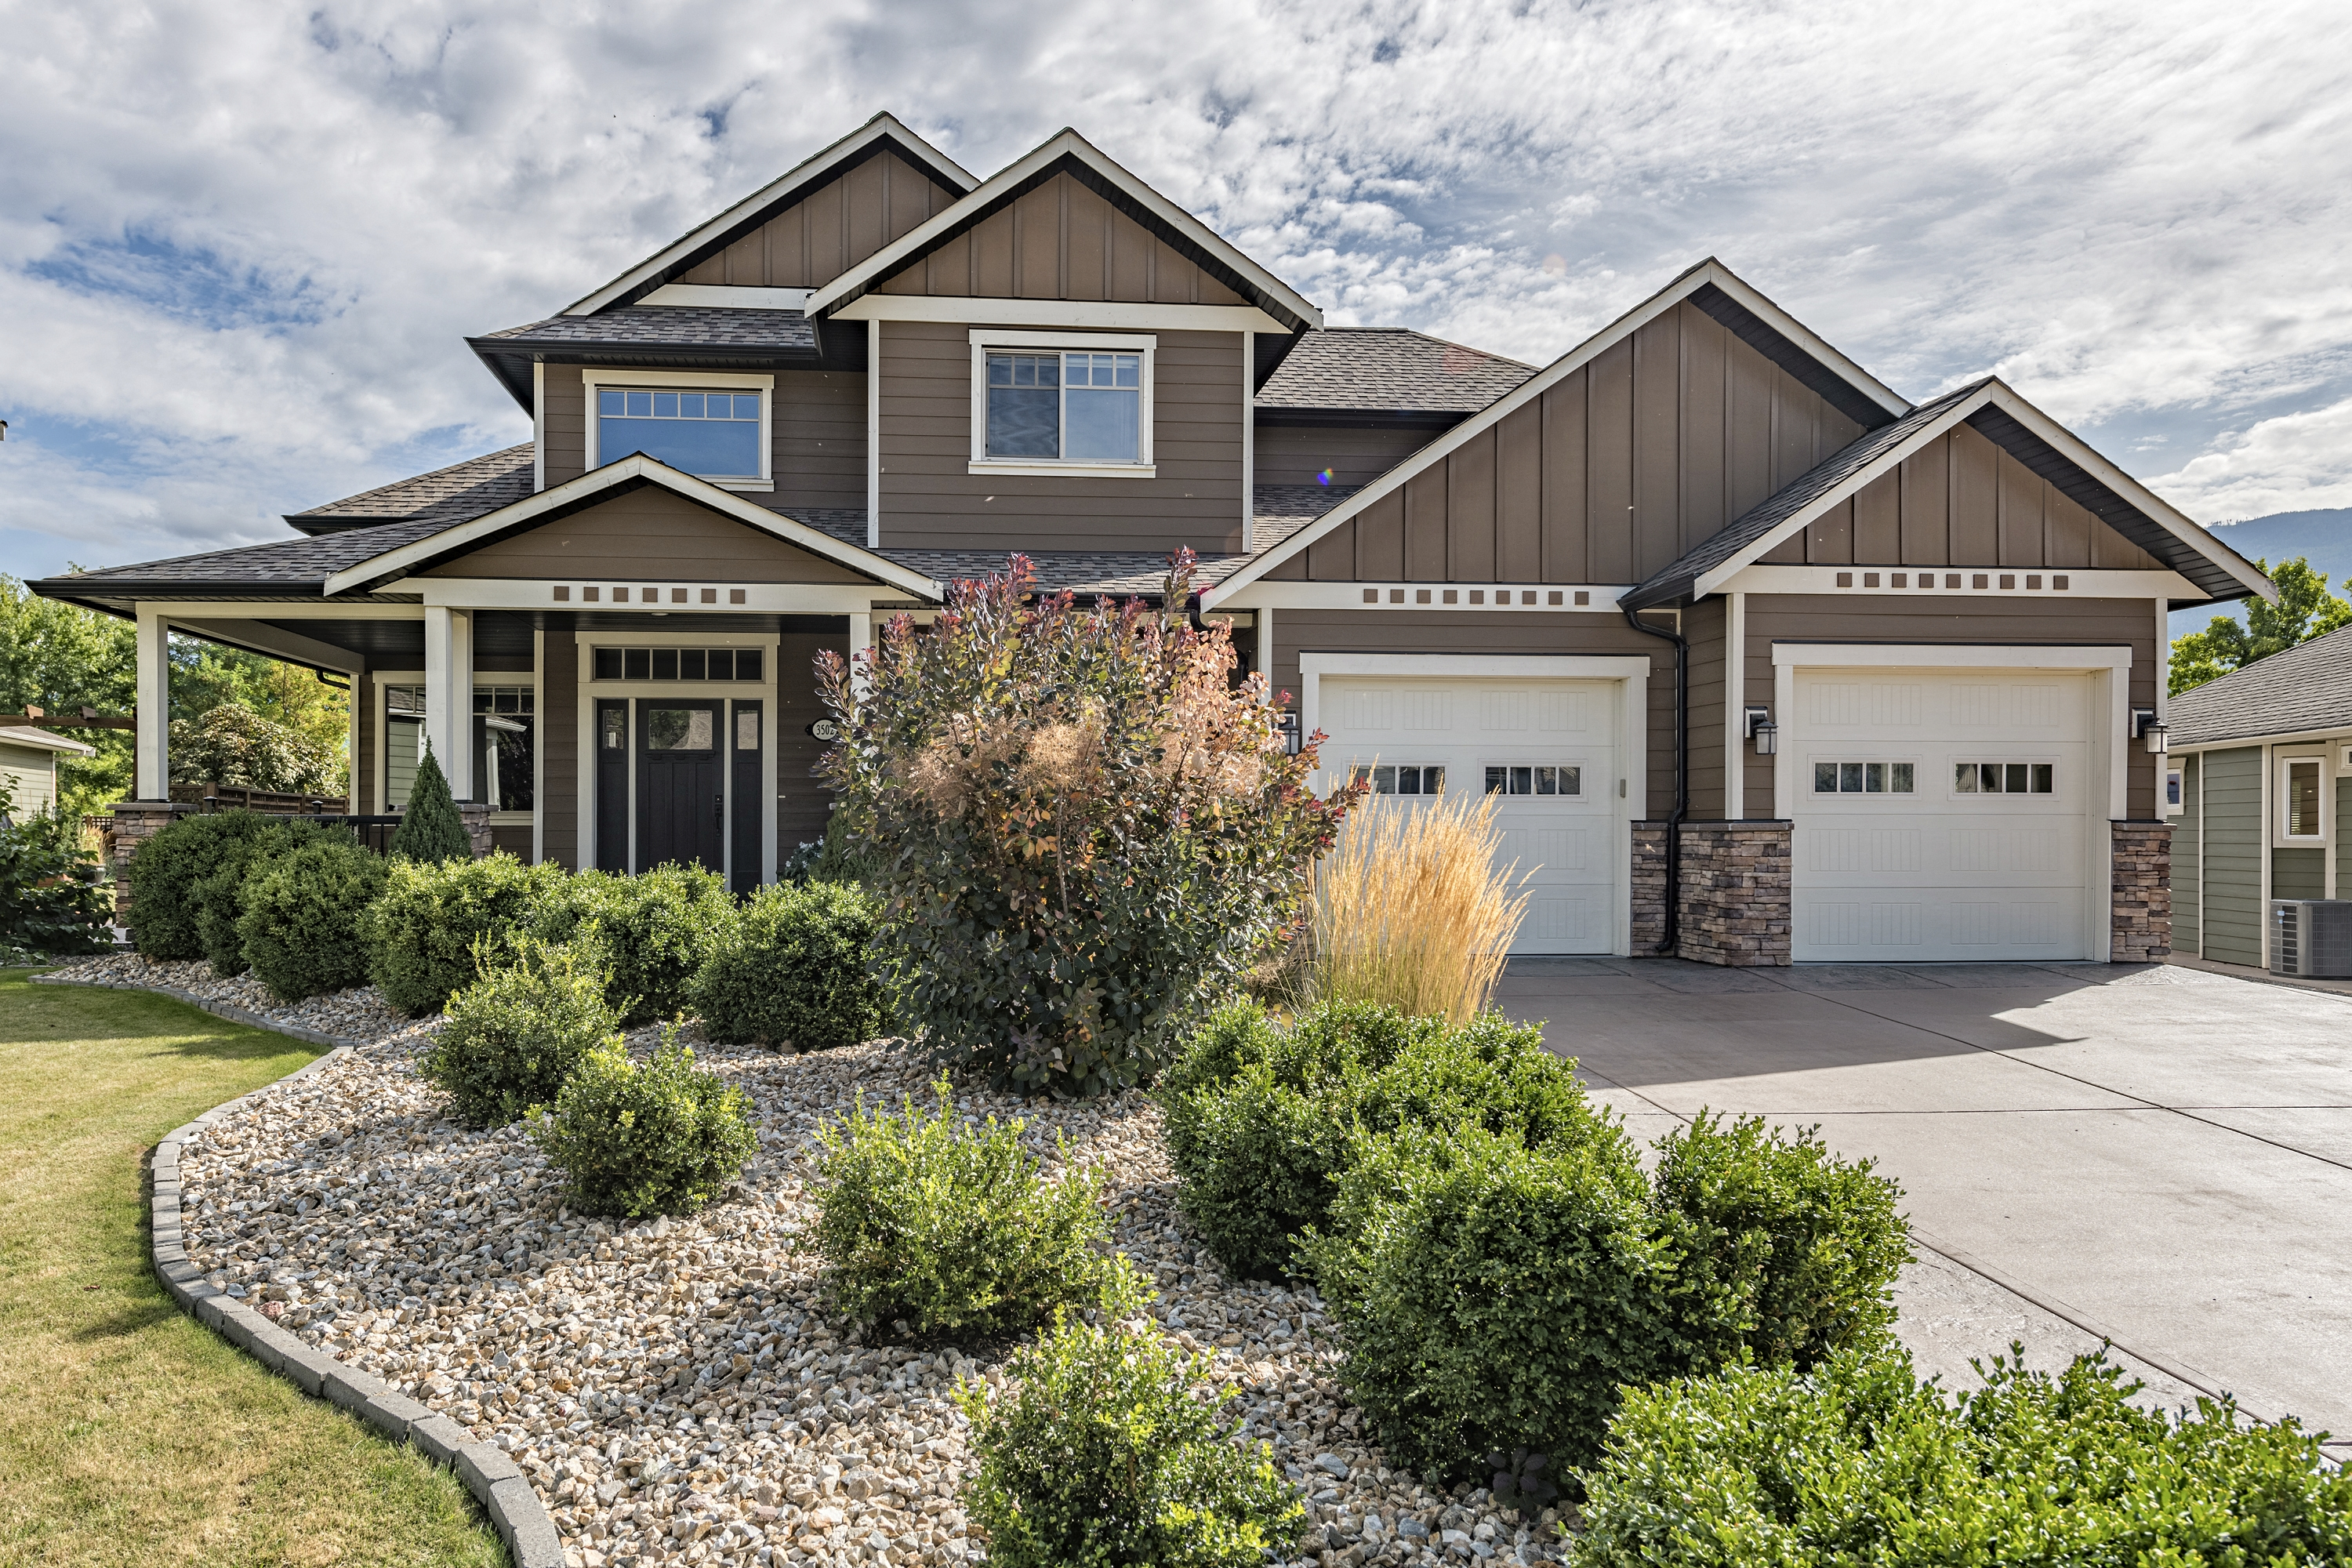 3502 McKechnie Drive | Armstrong, BC | $825,000